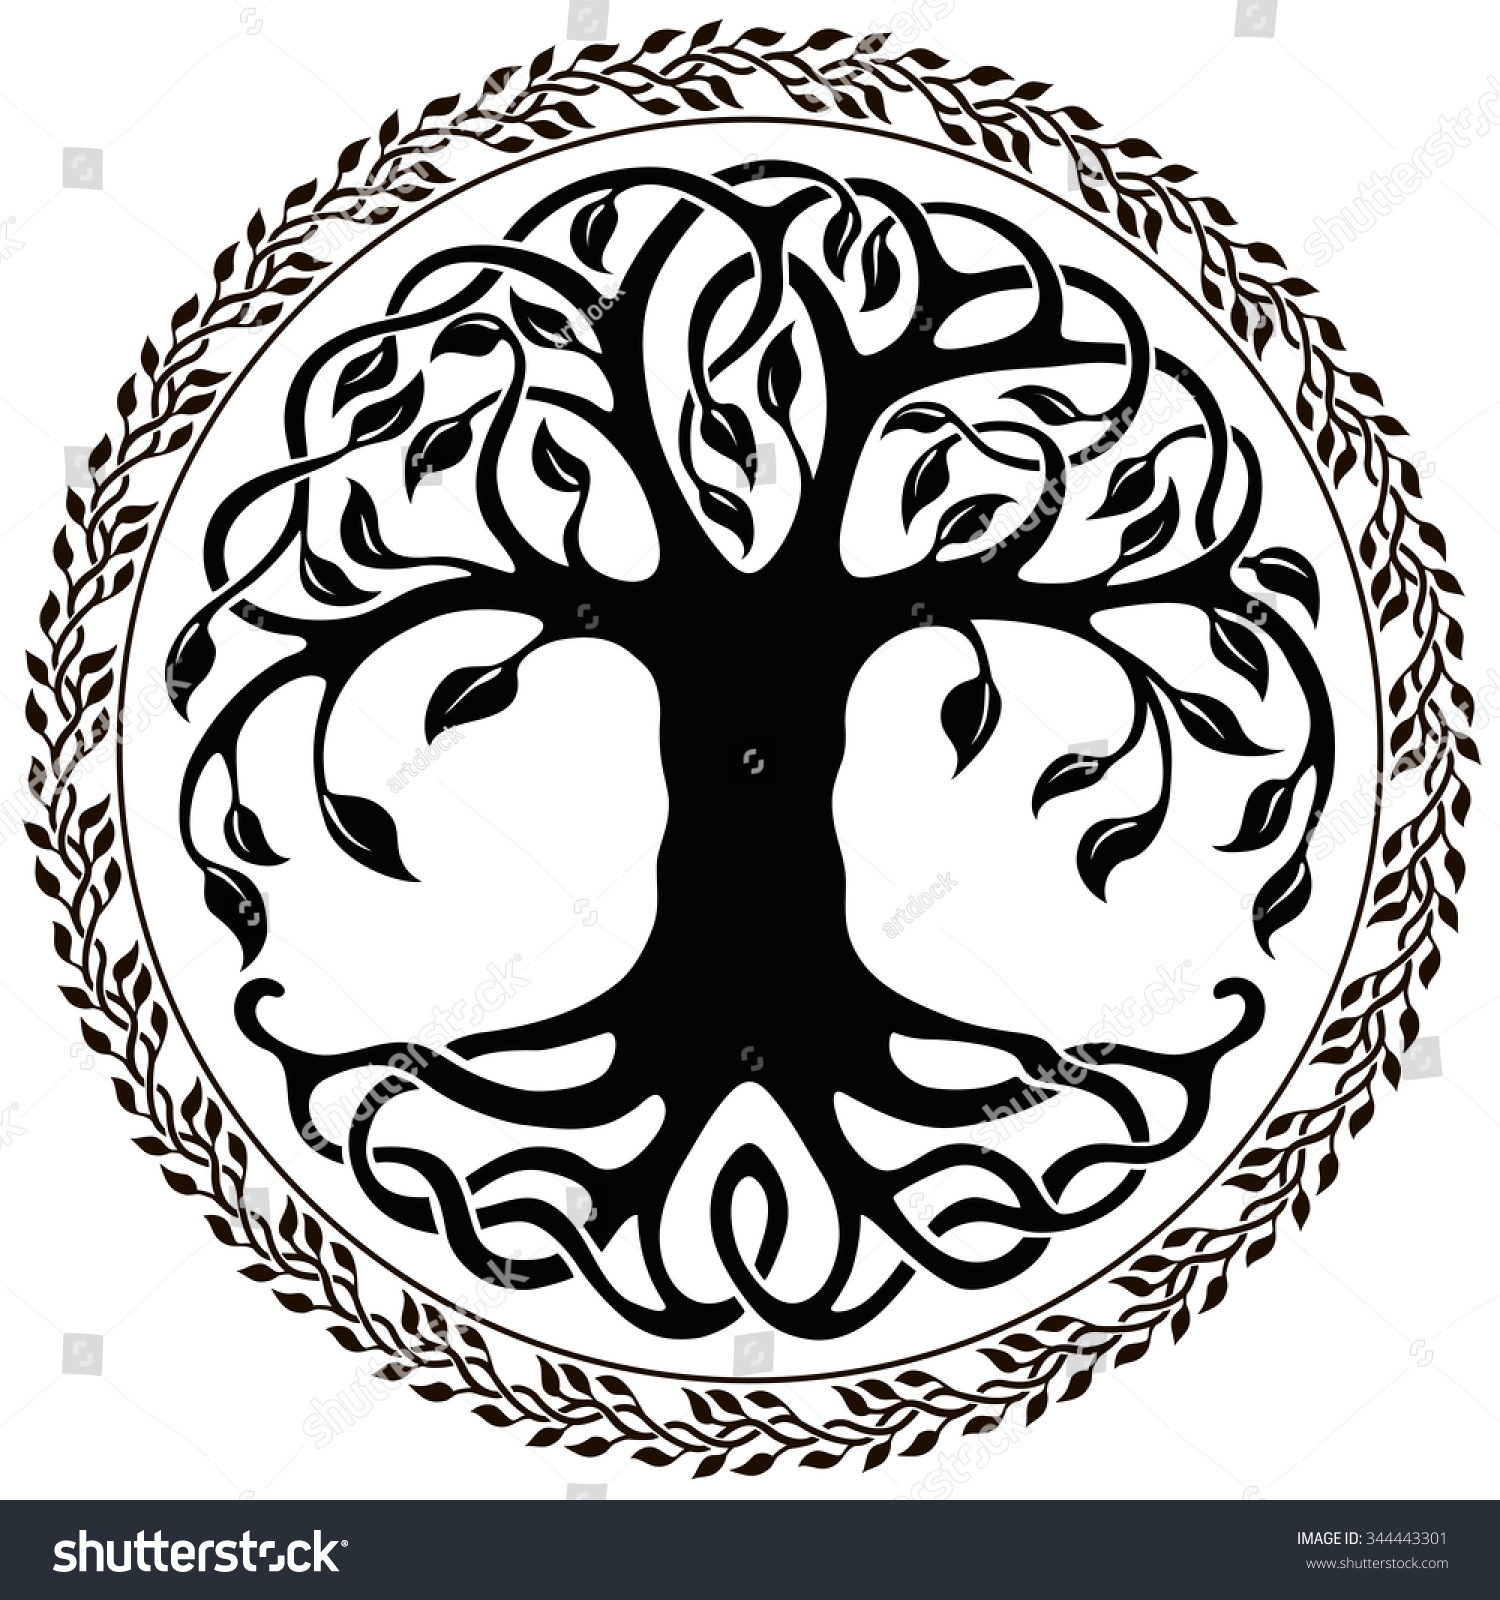 Vector ornament, decorative Celtic tree of life with floral round border - Black And White Tree Of Life PNG